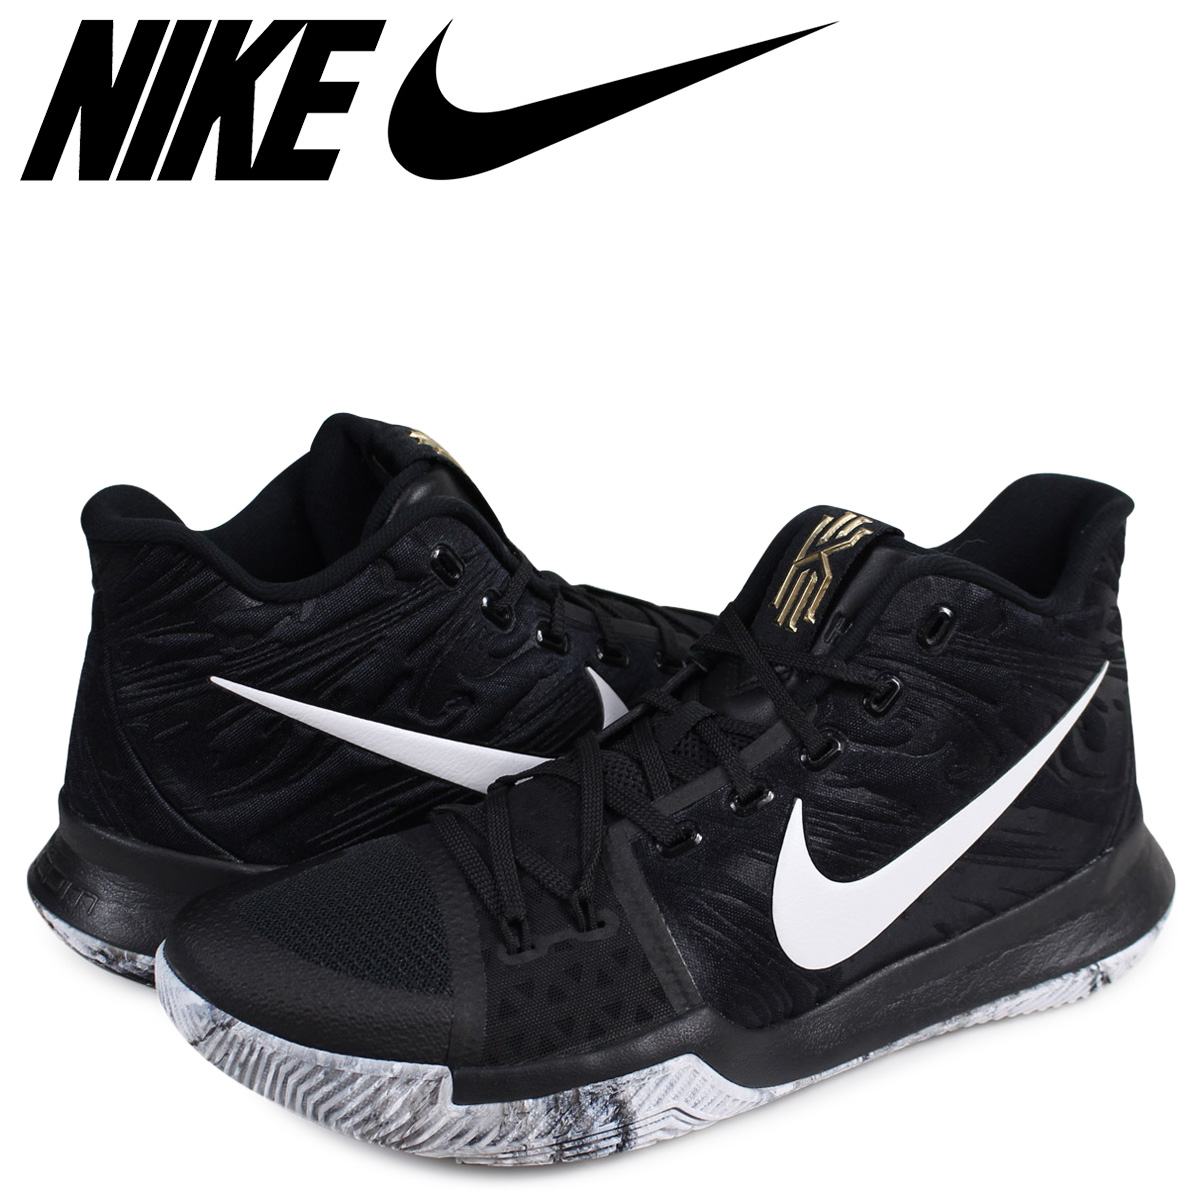 f5e1e5756234 ... denmark nike kyrie 3 bhm nike chi lee 3 sneakers men 852415 001 chi lee  irving